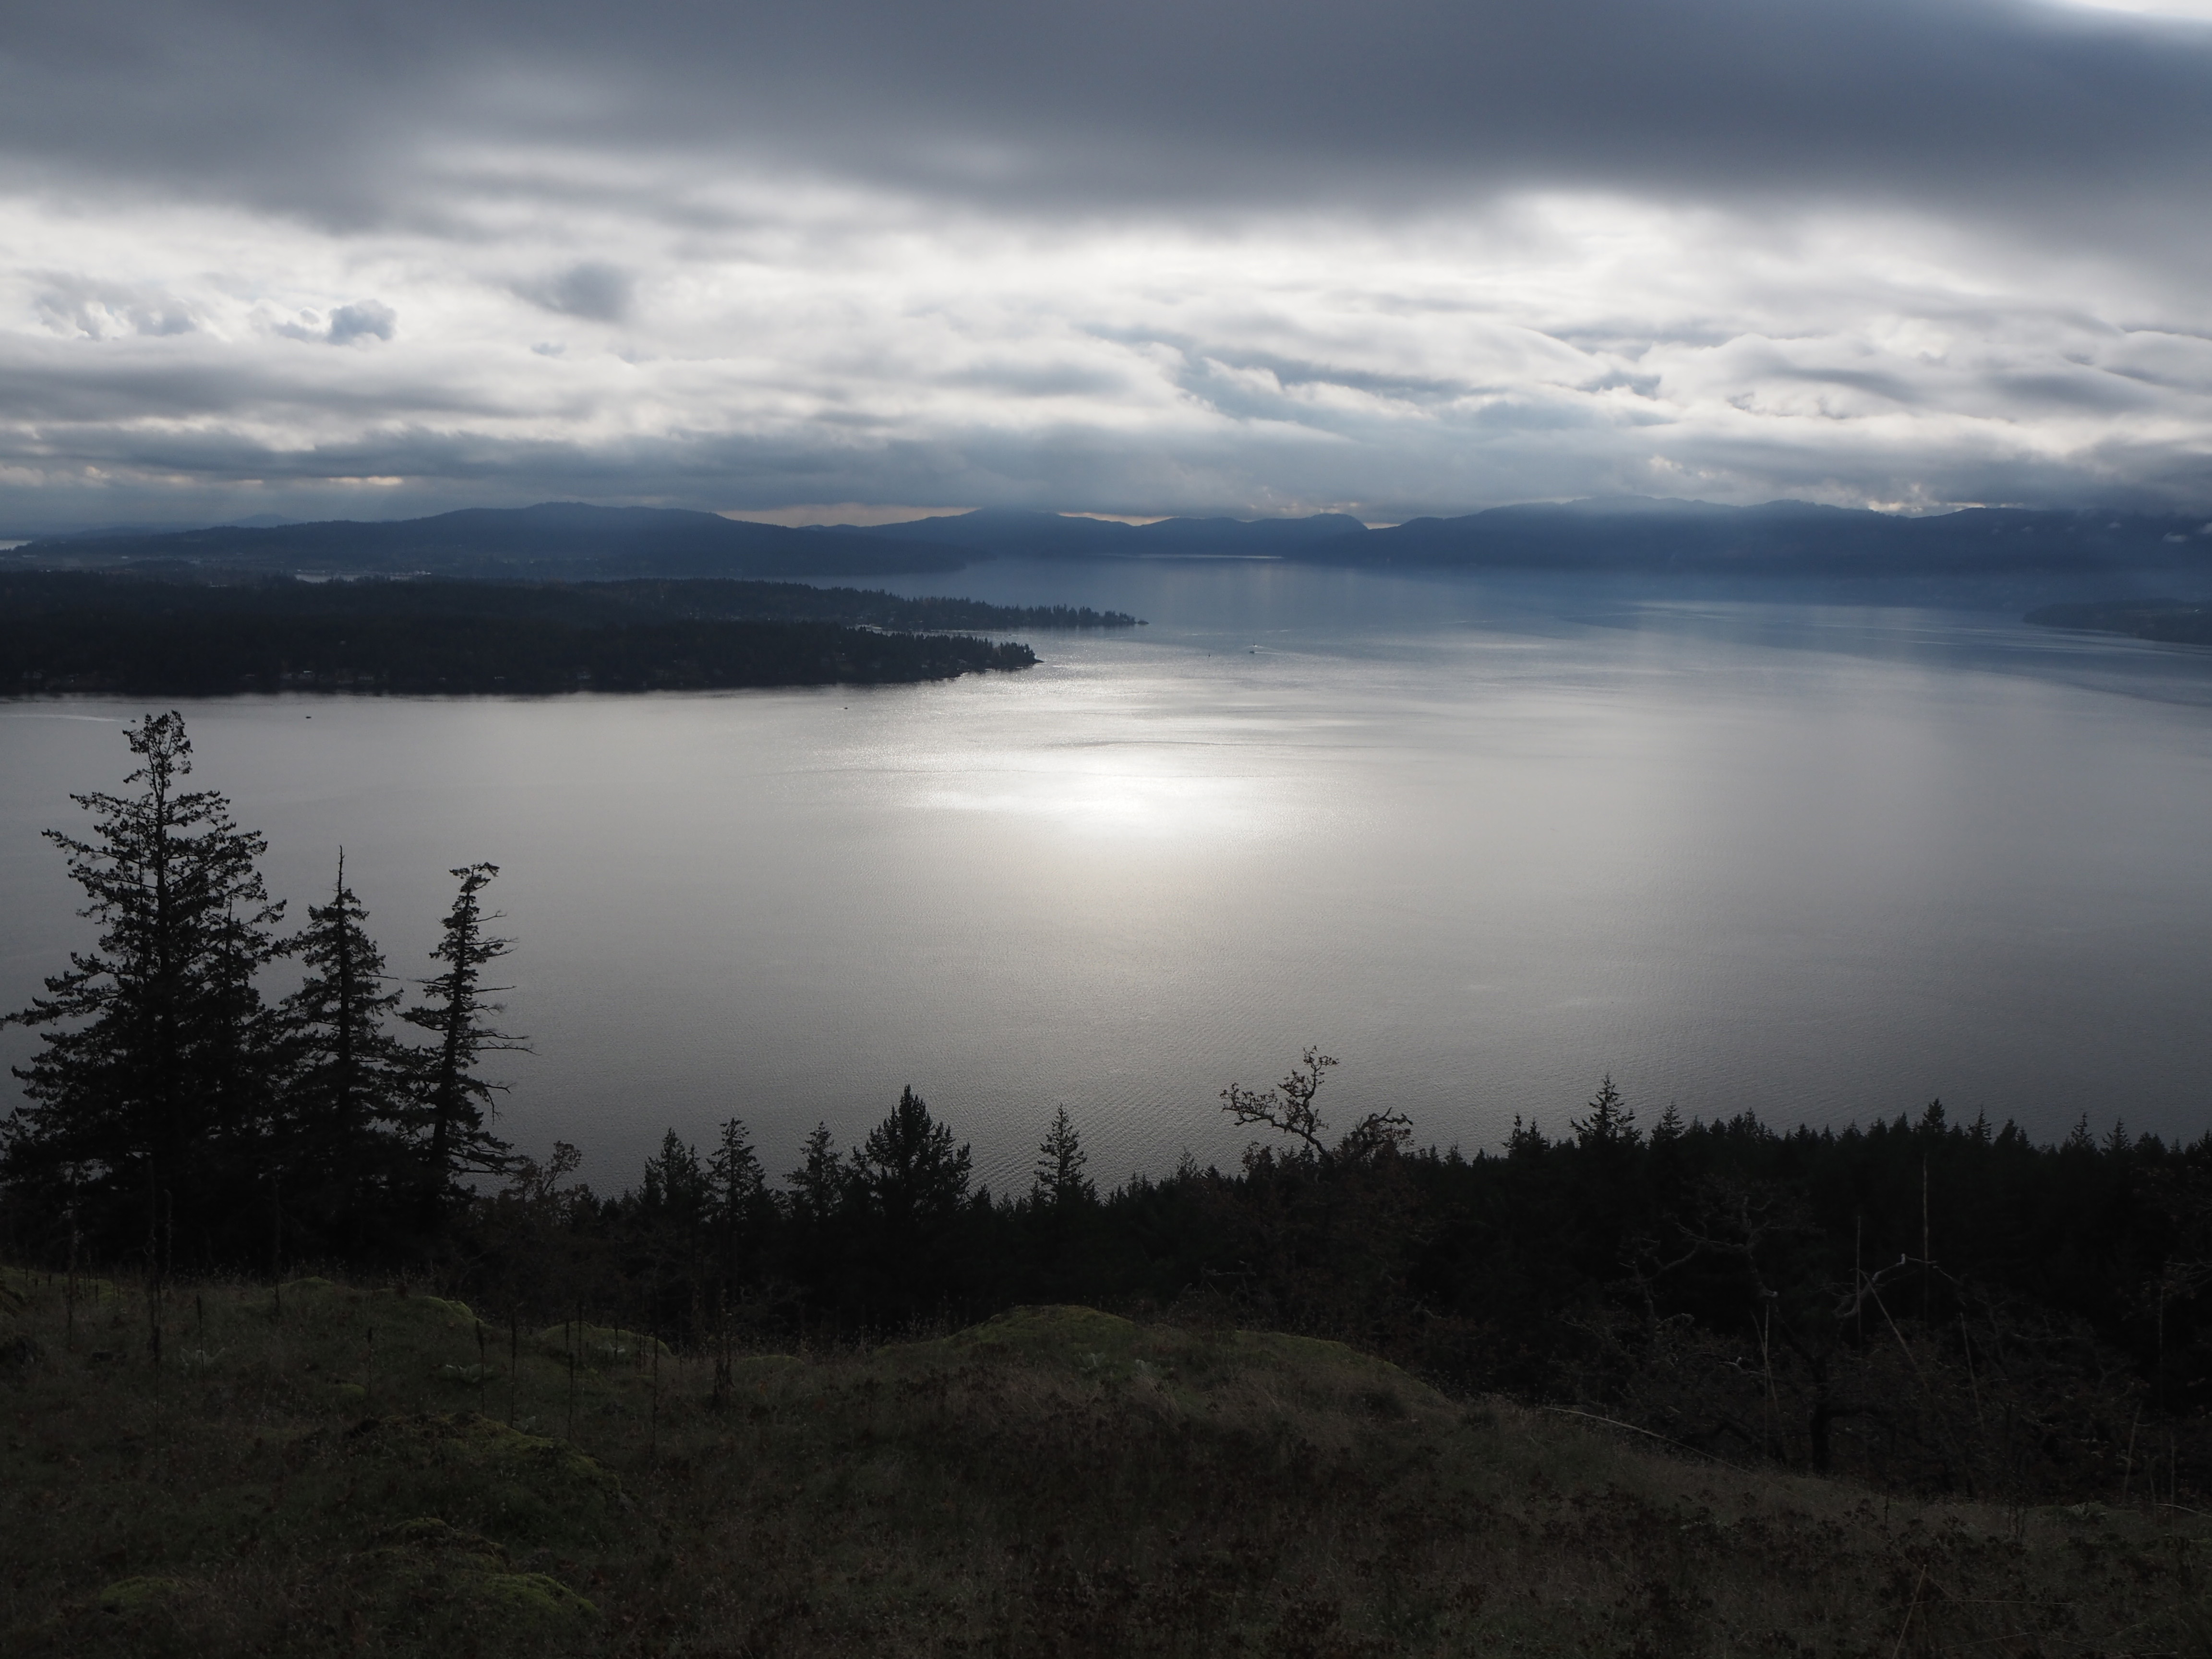 2020 November 11 view of Saanich Inlet and Vancouver Island from S,?UÁN with light-shining-on-water a symbol of the divine for many indigenous West Coast cultures